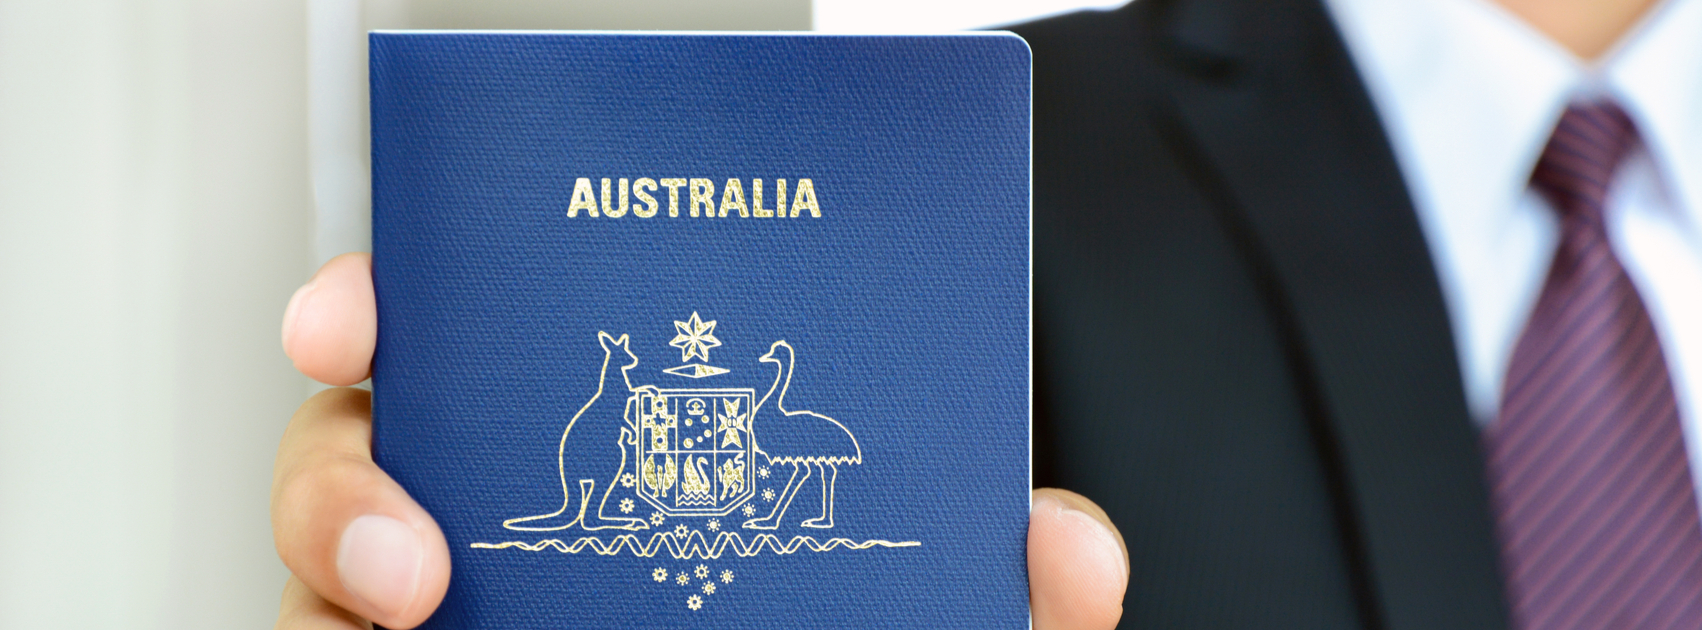 News: Australian Citizenship Approvals On The Rise After Hitting 15-year Low